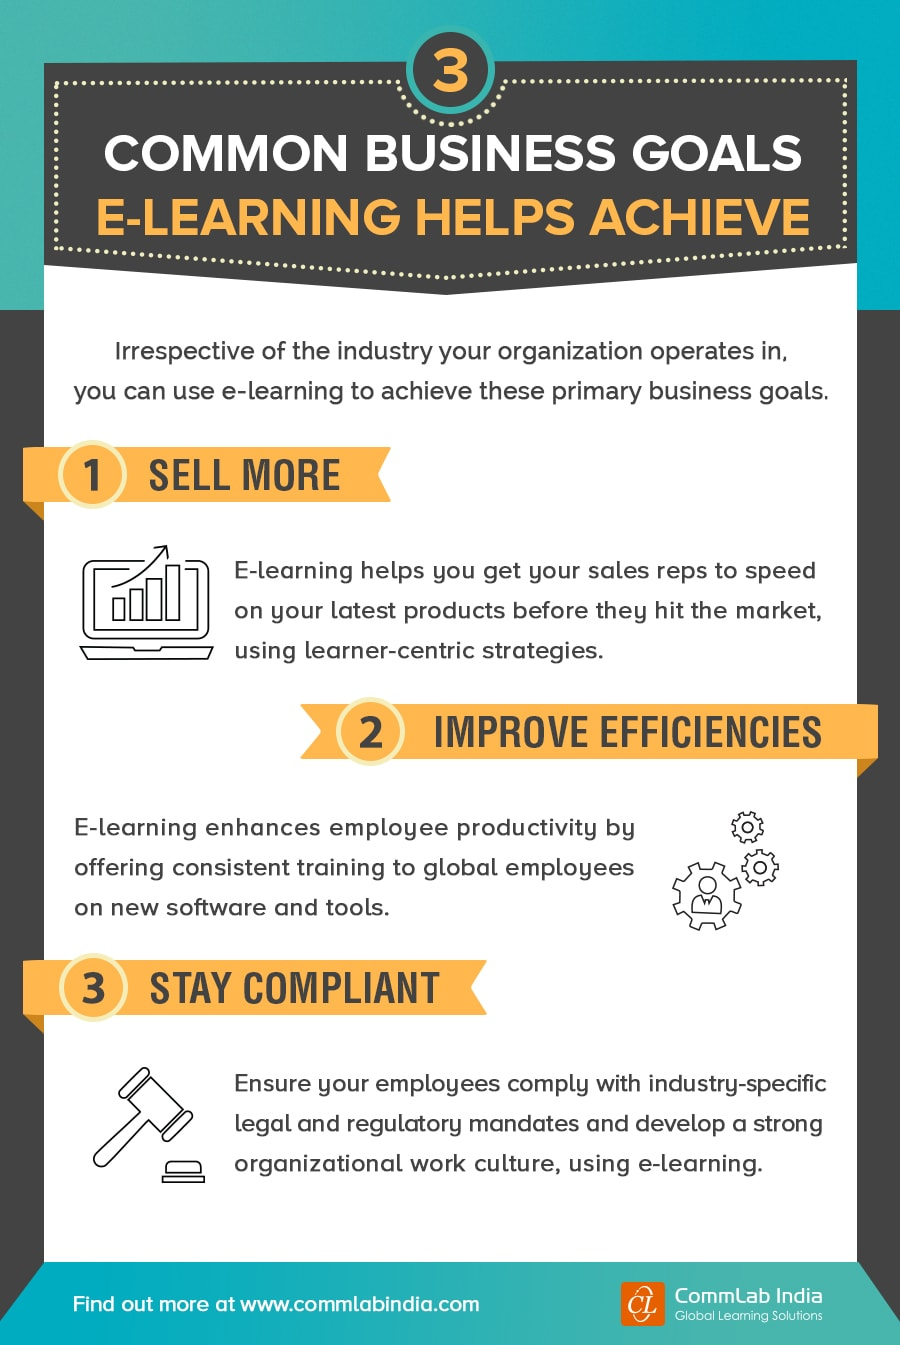 3 Common Business Goals E-learning Helps Achieve [Infographic]